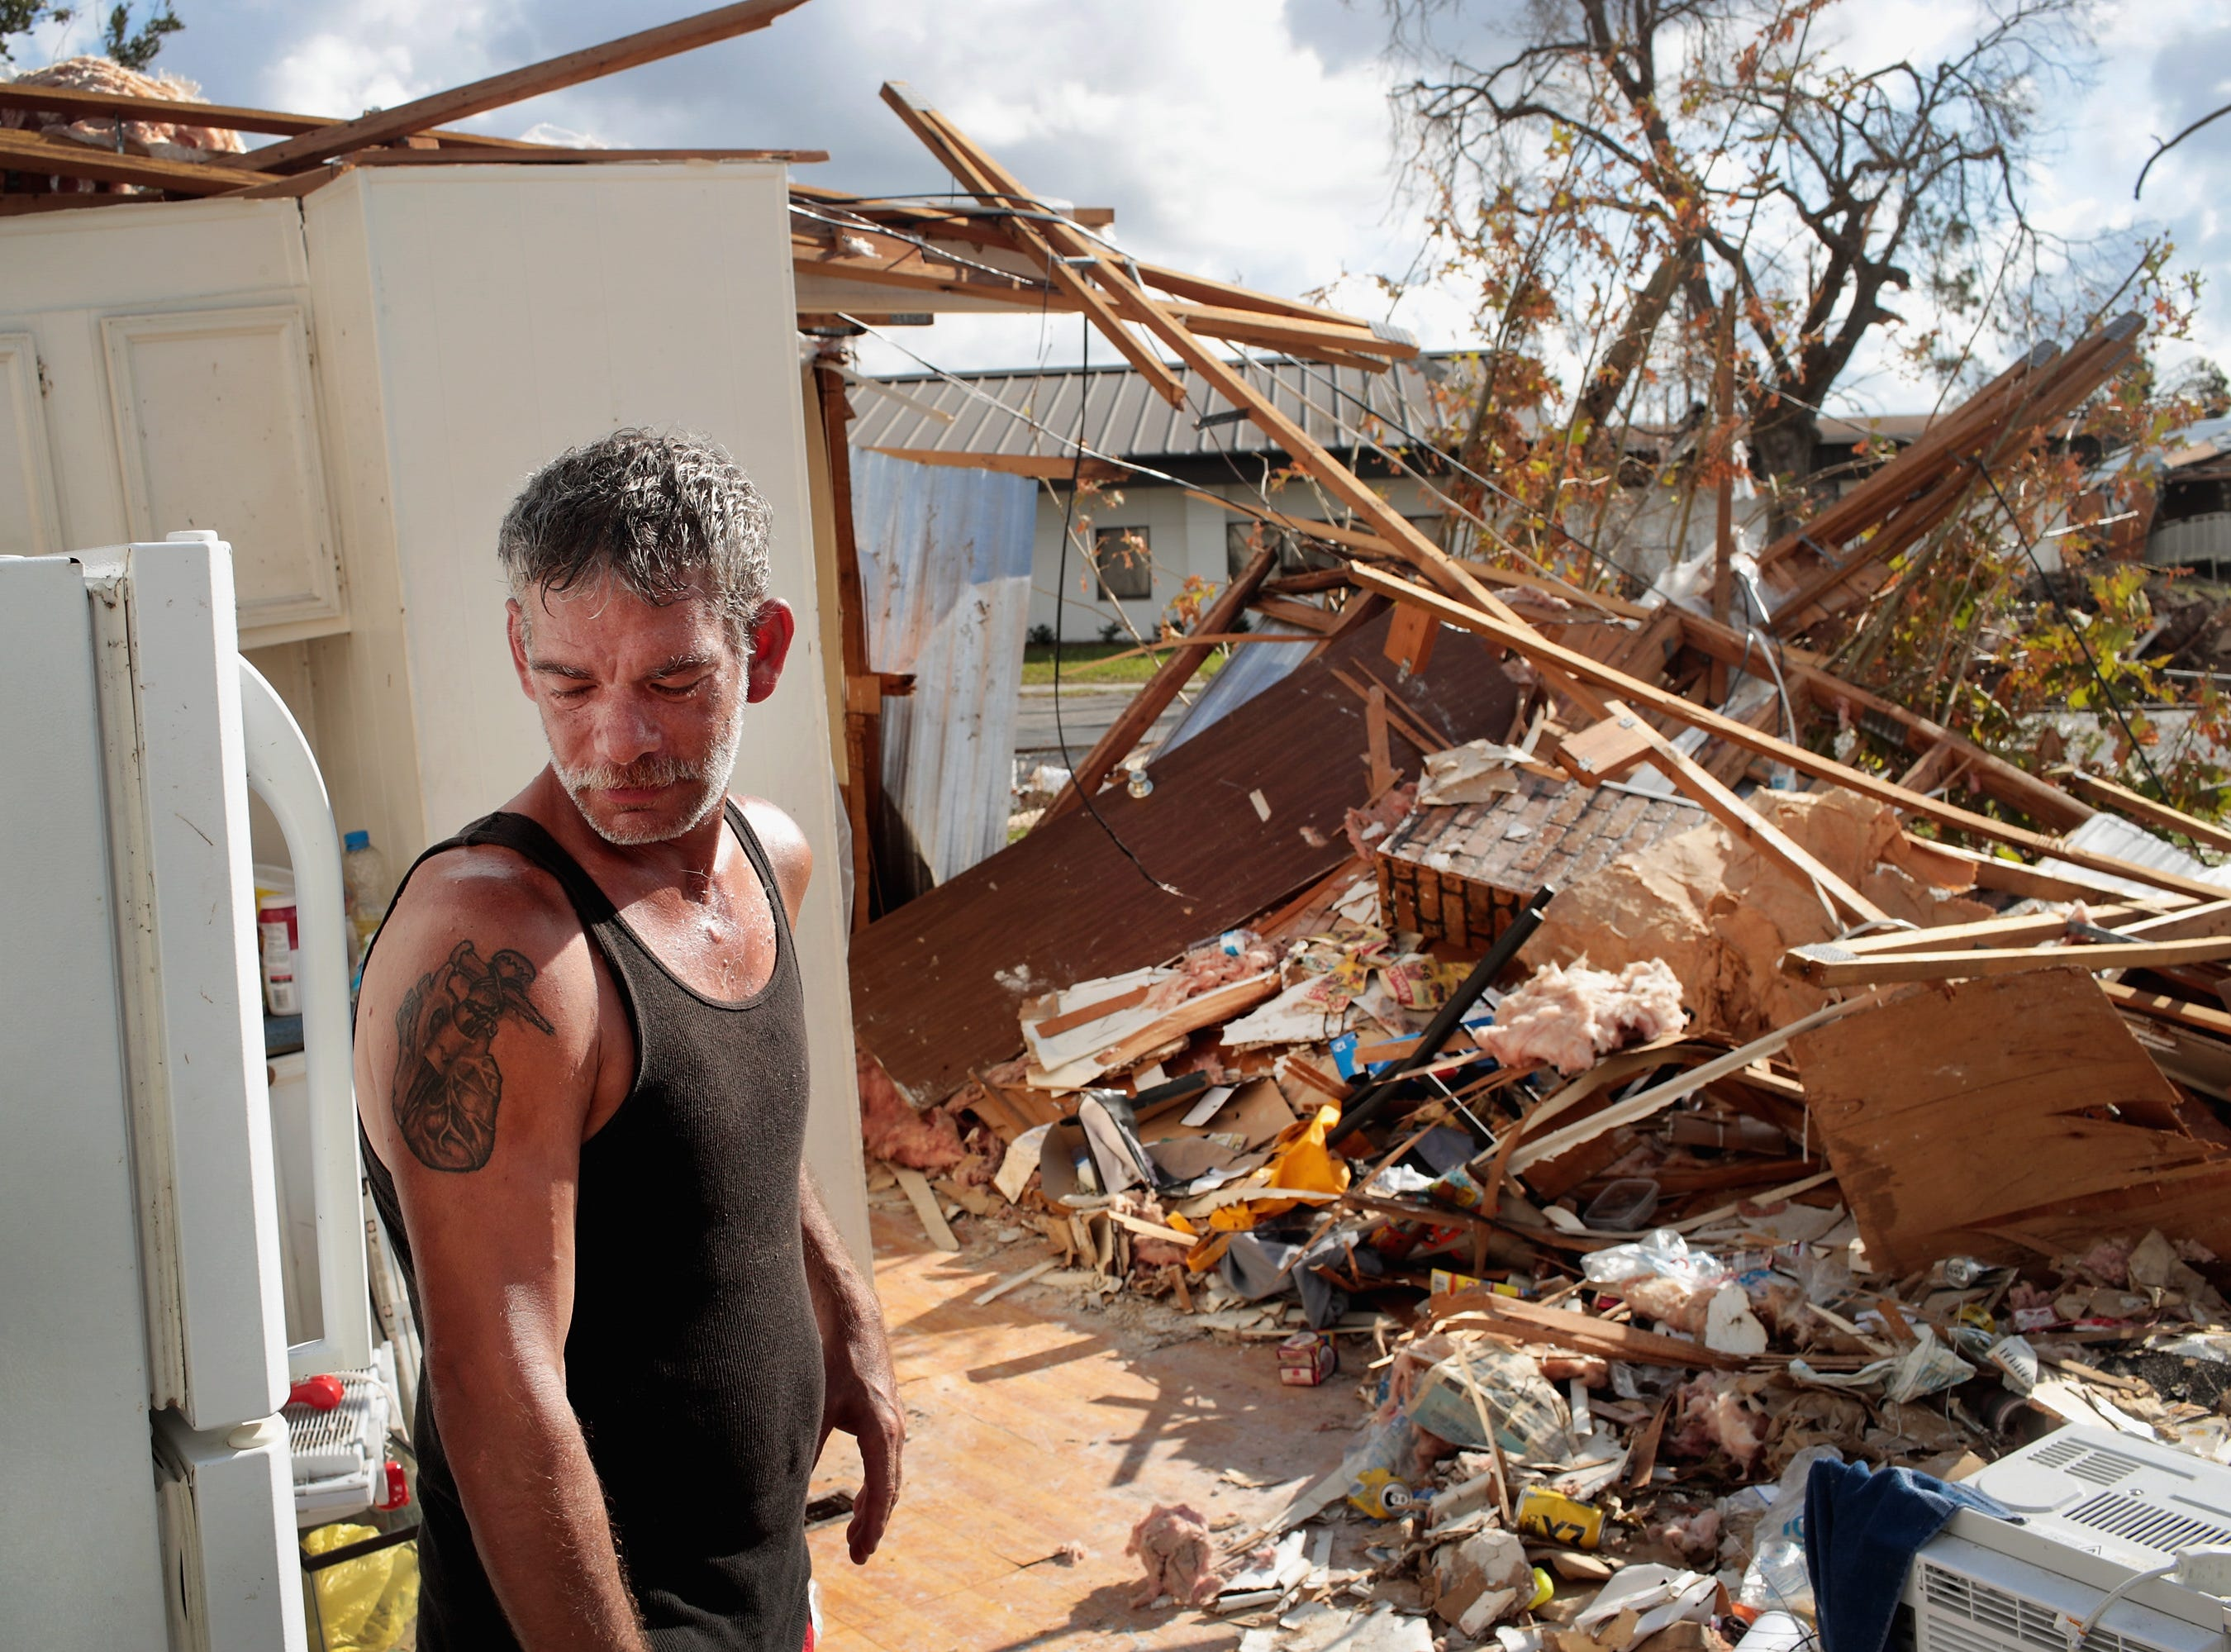 Chet Bundy stands in the kitchen of the trailer home he was in when Hurricane Michael passed through on Oct. 20, 2018 in Panama City, Fla. He survived the storm crouching in the bathroom with his partner and pets as the trailer was ripped apart.